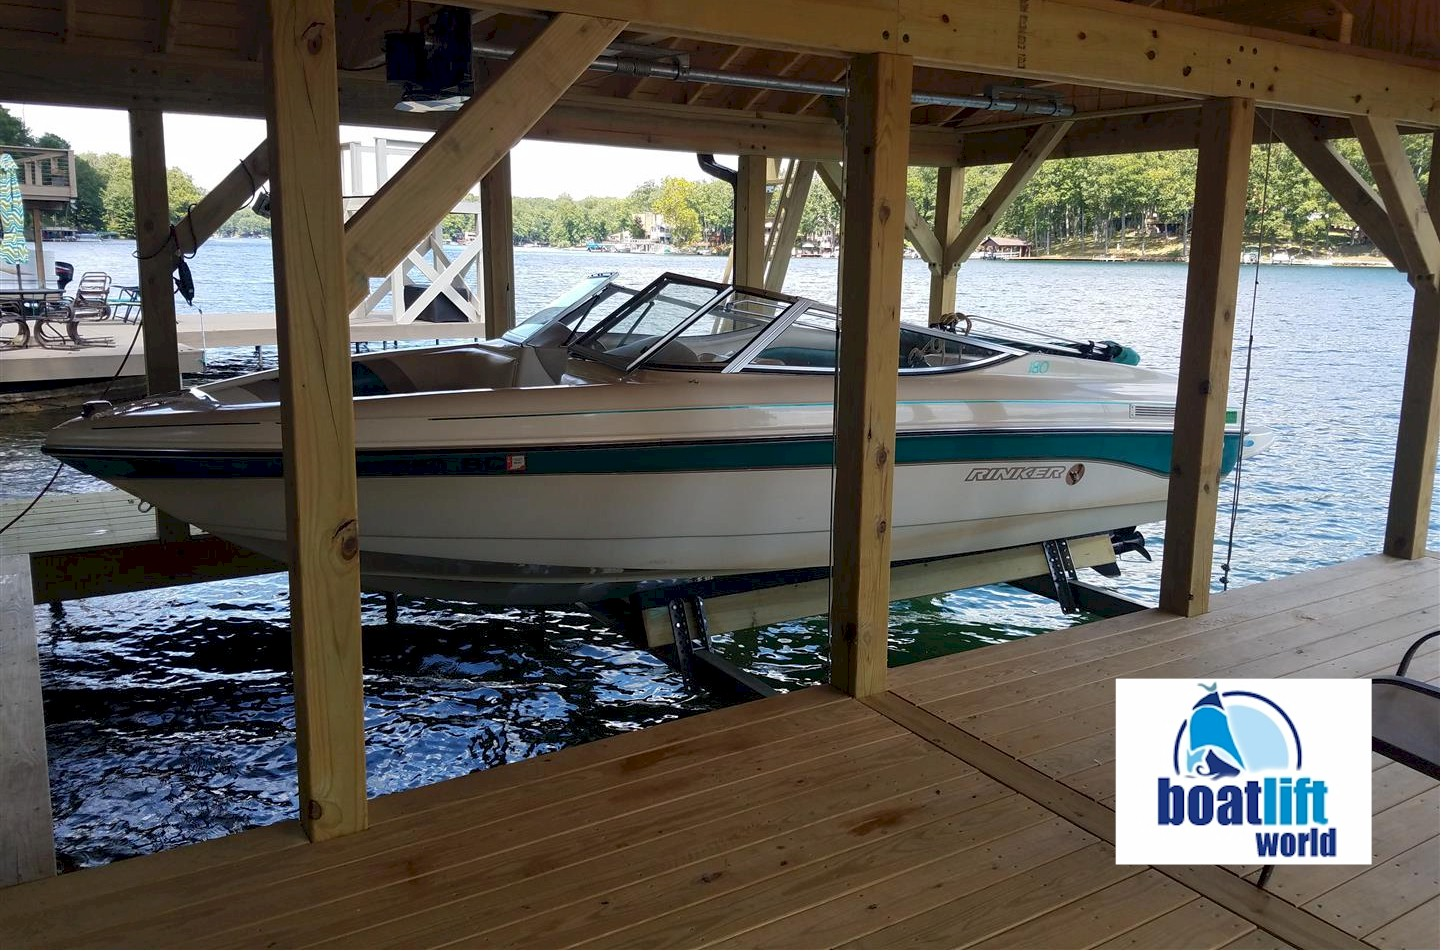 Boat Lift World - Free Shipping Boat Lifts, Gear Units, and Boat